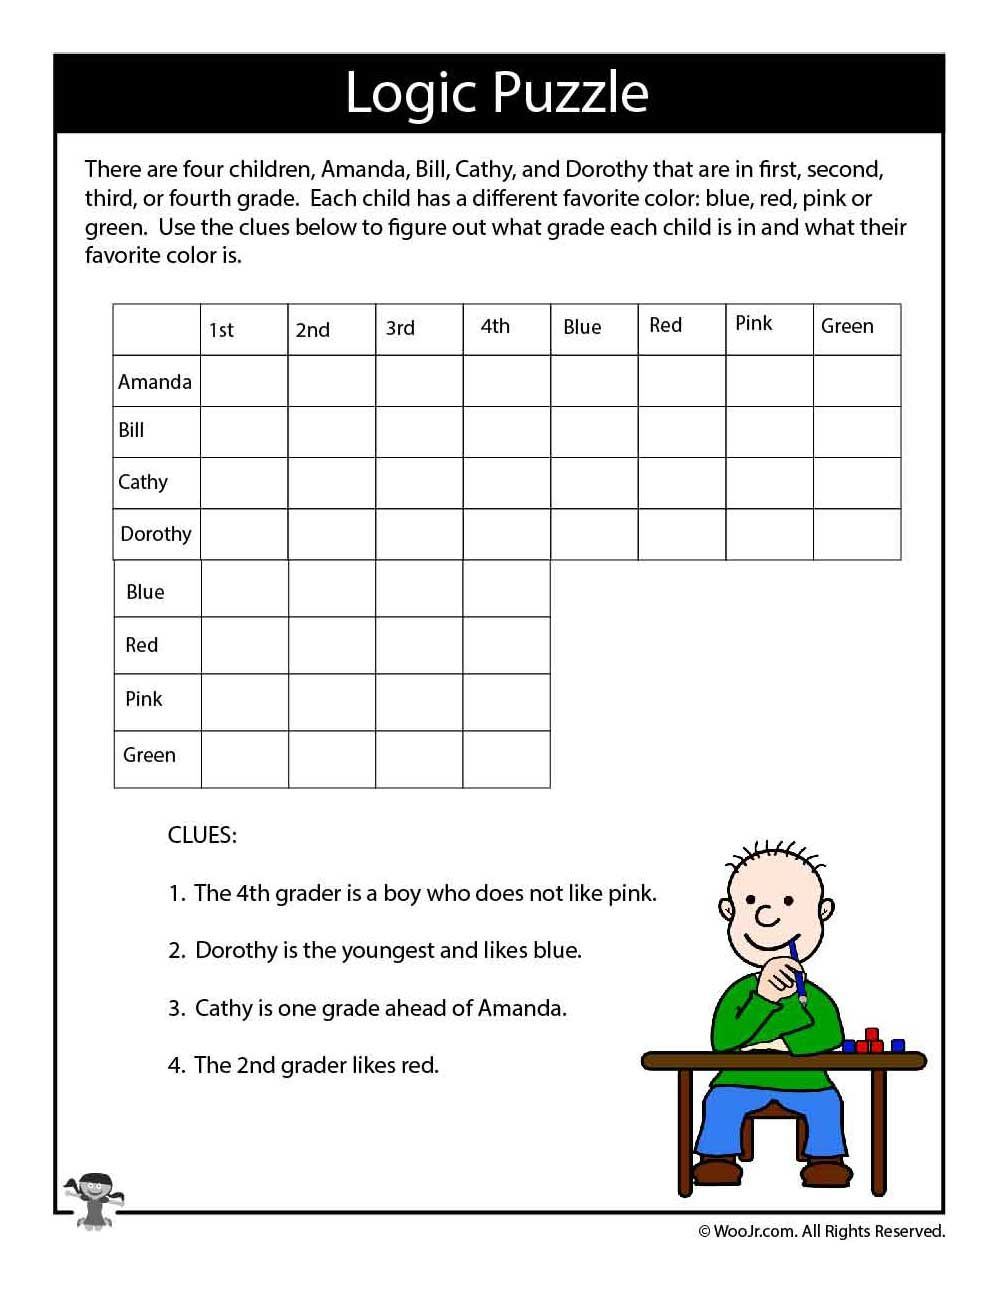 small resolution of Hard Logic Puzzle for Kids   Woo! Jr. Kids Activities   Math logic puzzles